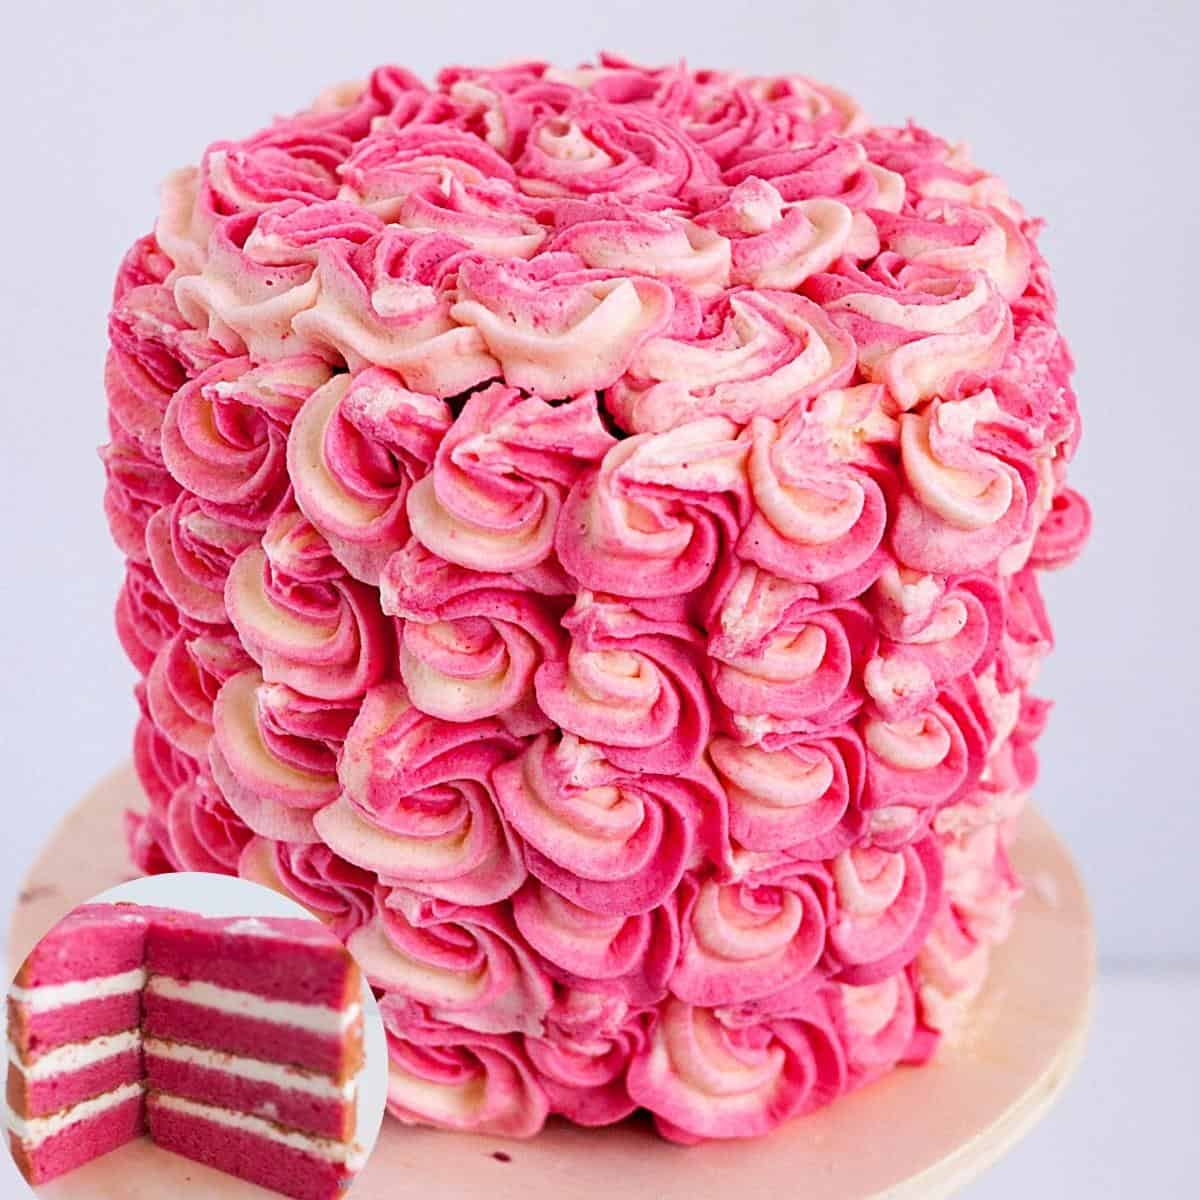 A frosted strawberry layer cake on a cake board.